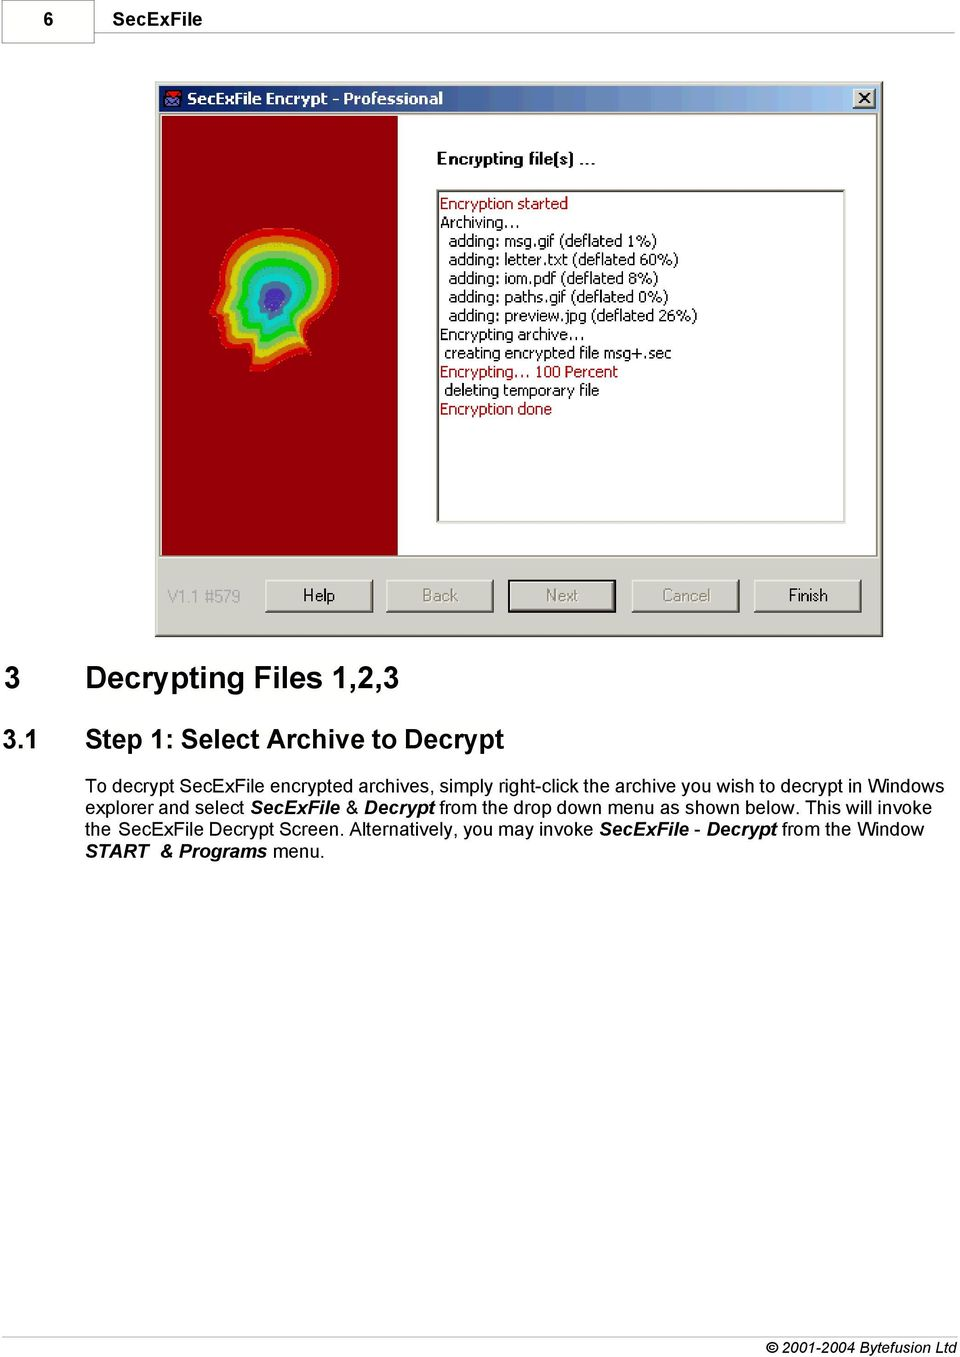 the archive you wish to decrypt in Windows explorer and select & Decrypt from the